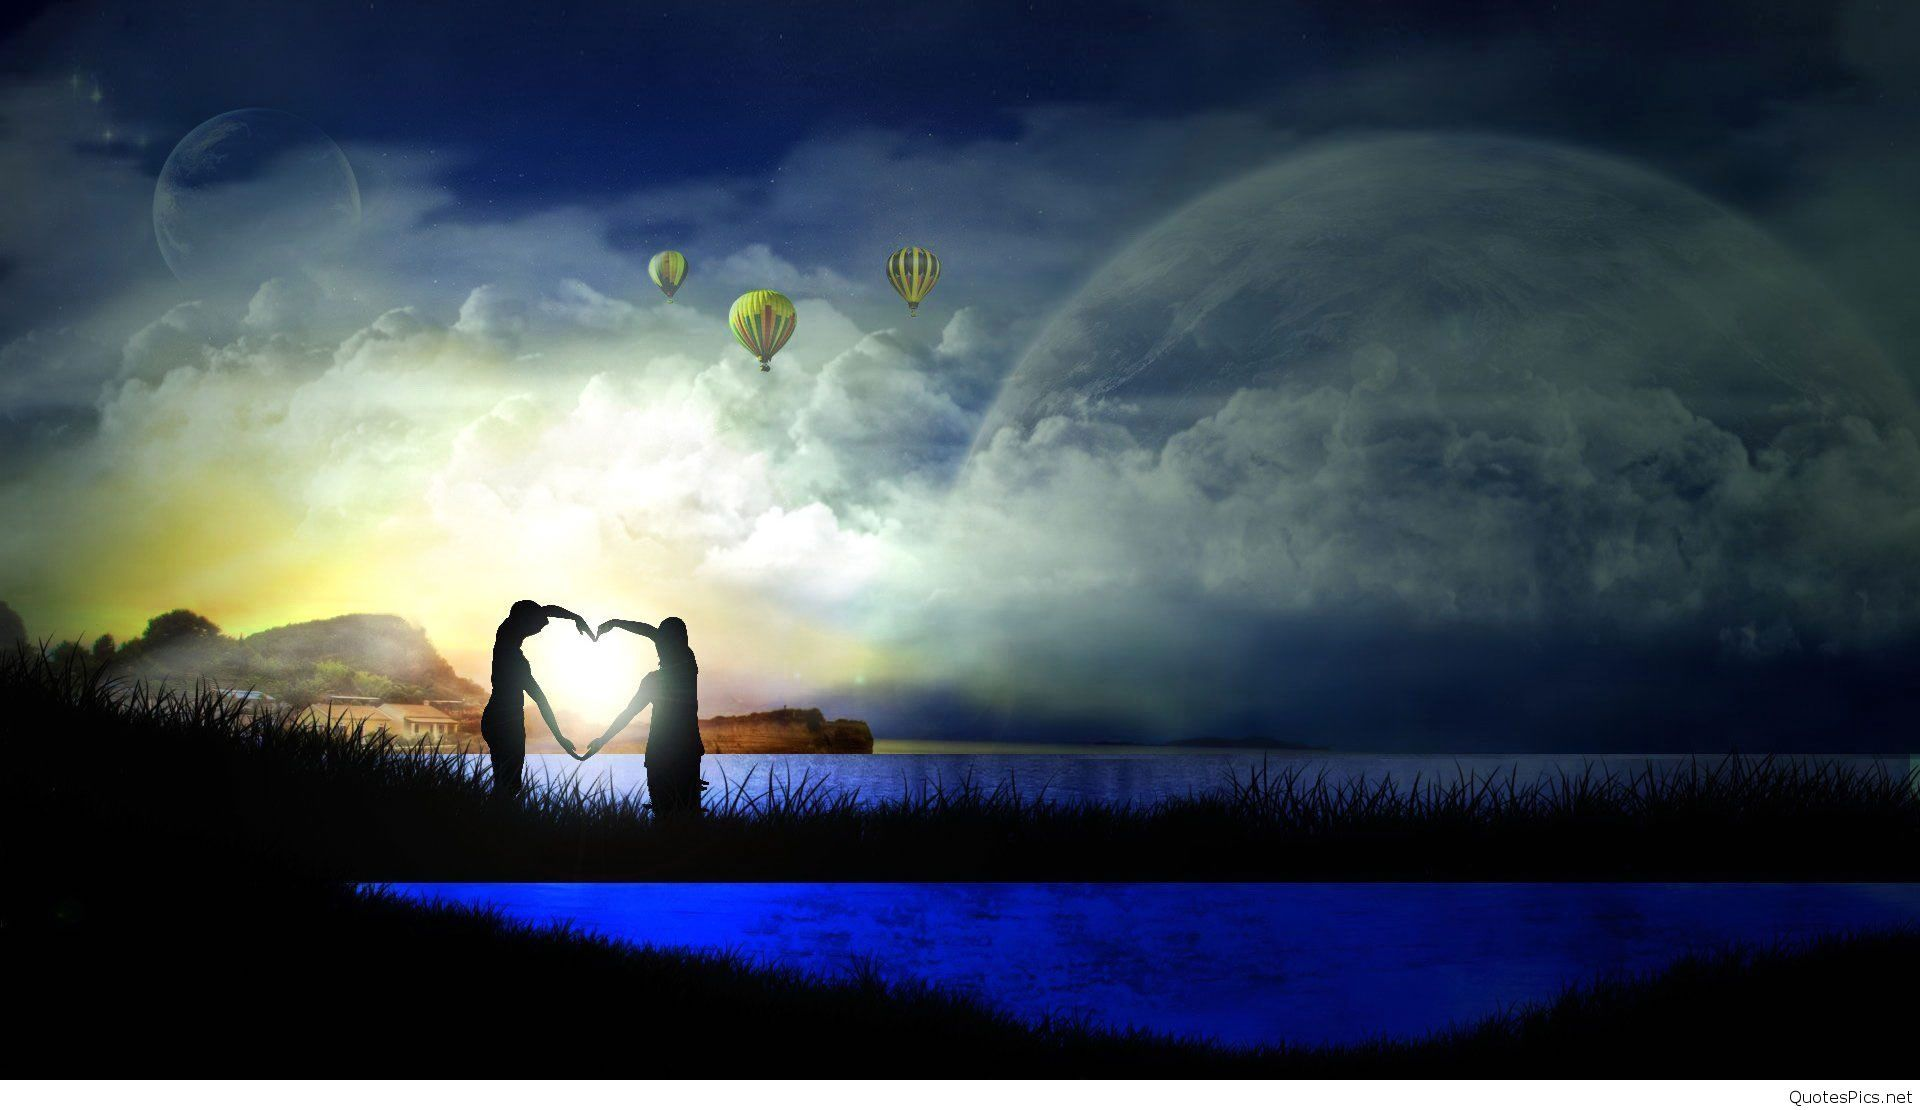 950 Koleksi Download Romantic Wallpaper Background HD Terbaru